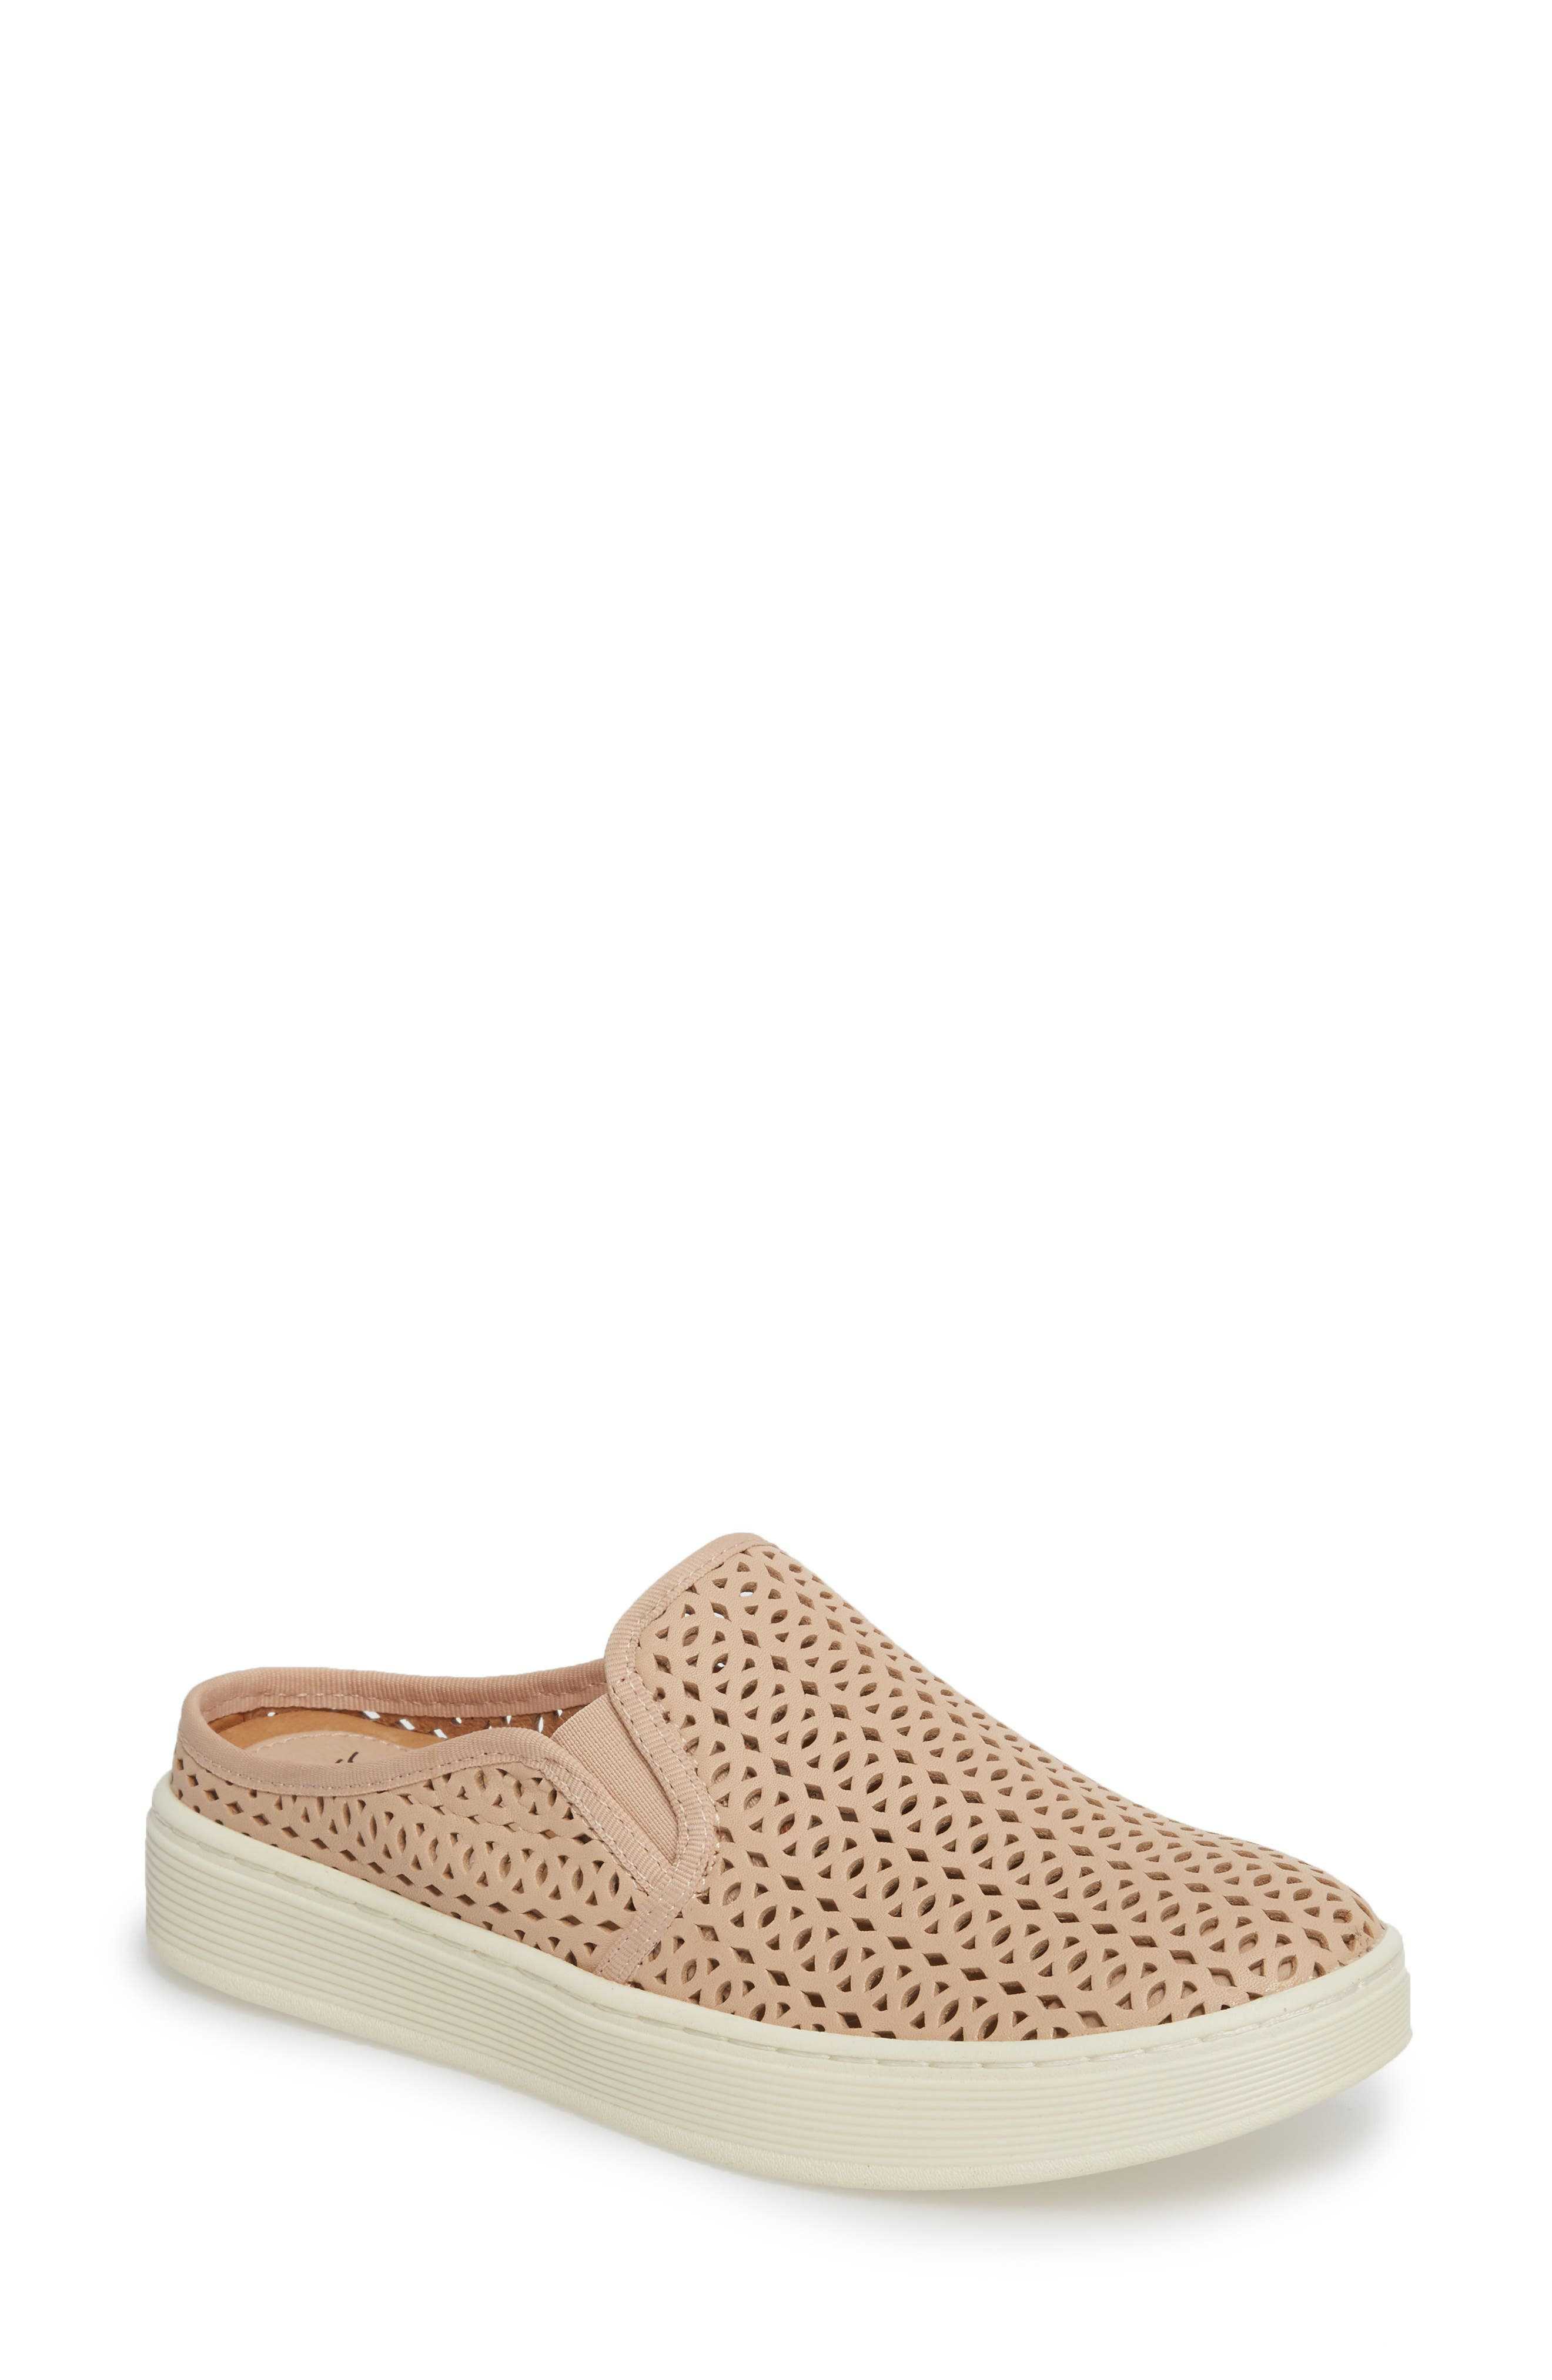 Somers II Sneaker Mule,                         Main,                         color, Blush Leather